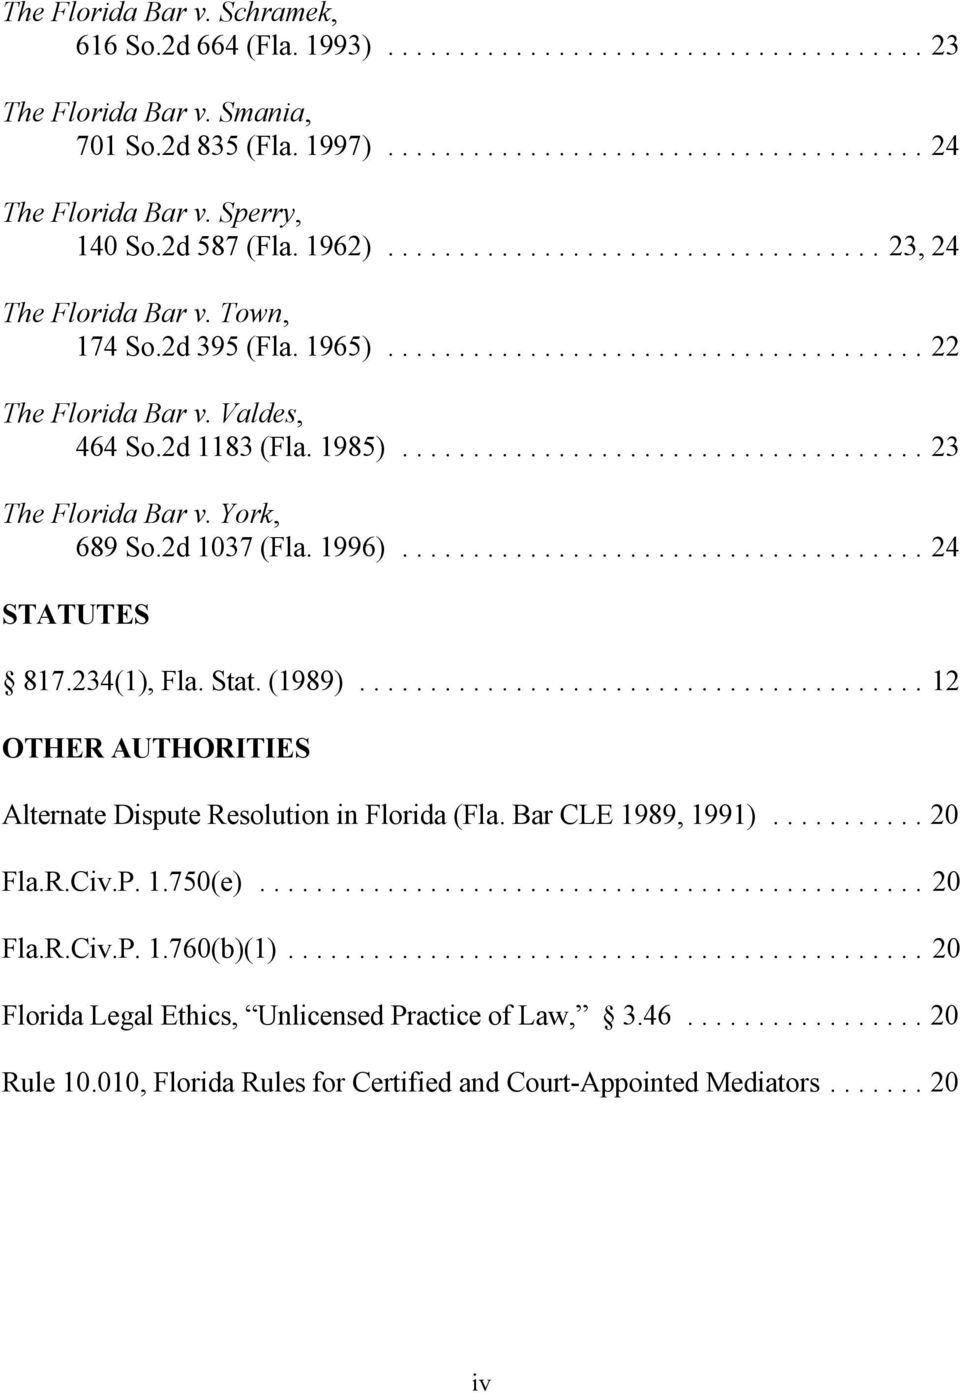 1996)... 24 STATUTES 817.234(1), Fla. Stat. (1989)... 12 OTHER AUTHORITIES Alternate Dispute Resolution in Florida (Fla. Bar CLE 1989, 1991)... 20 Fla.R.Civ.P. 1.750(e).